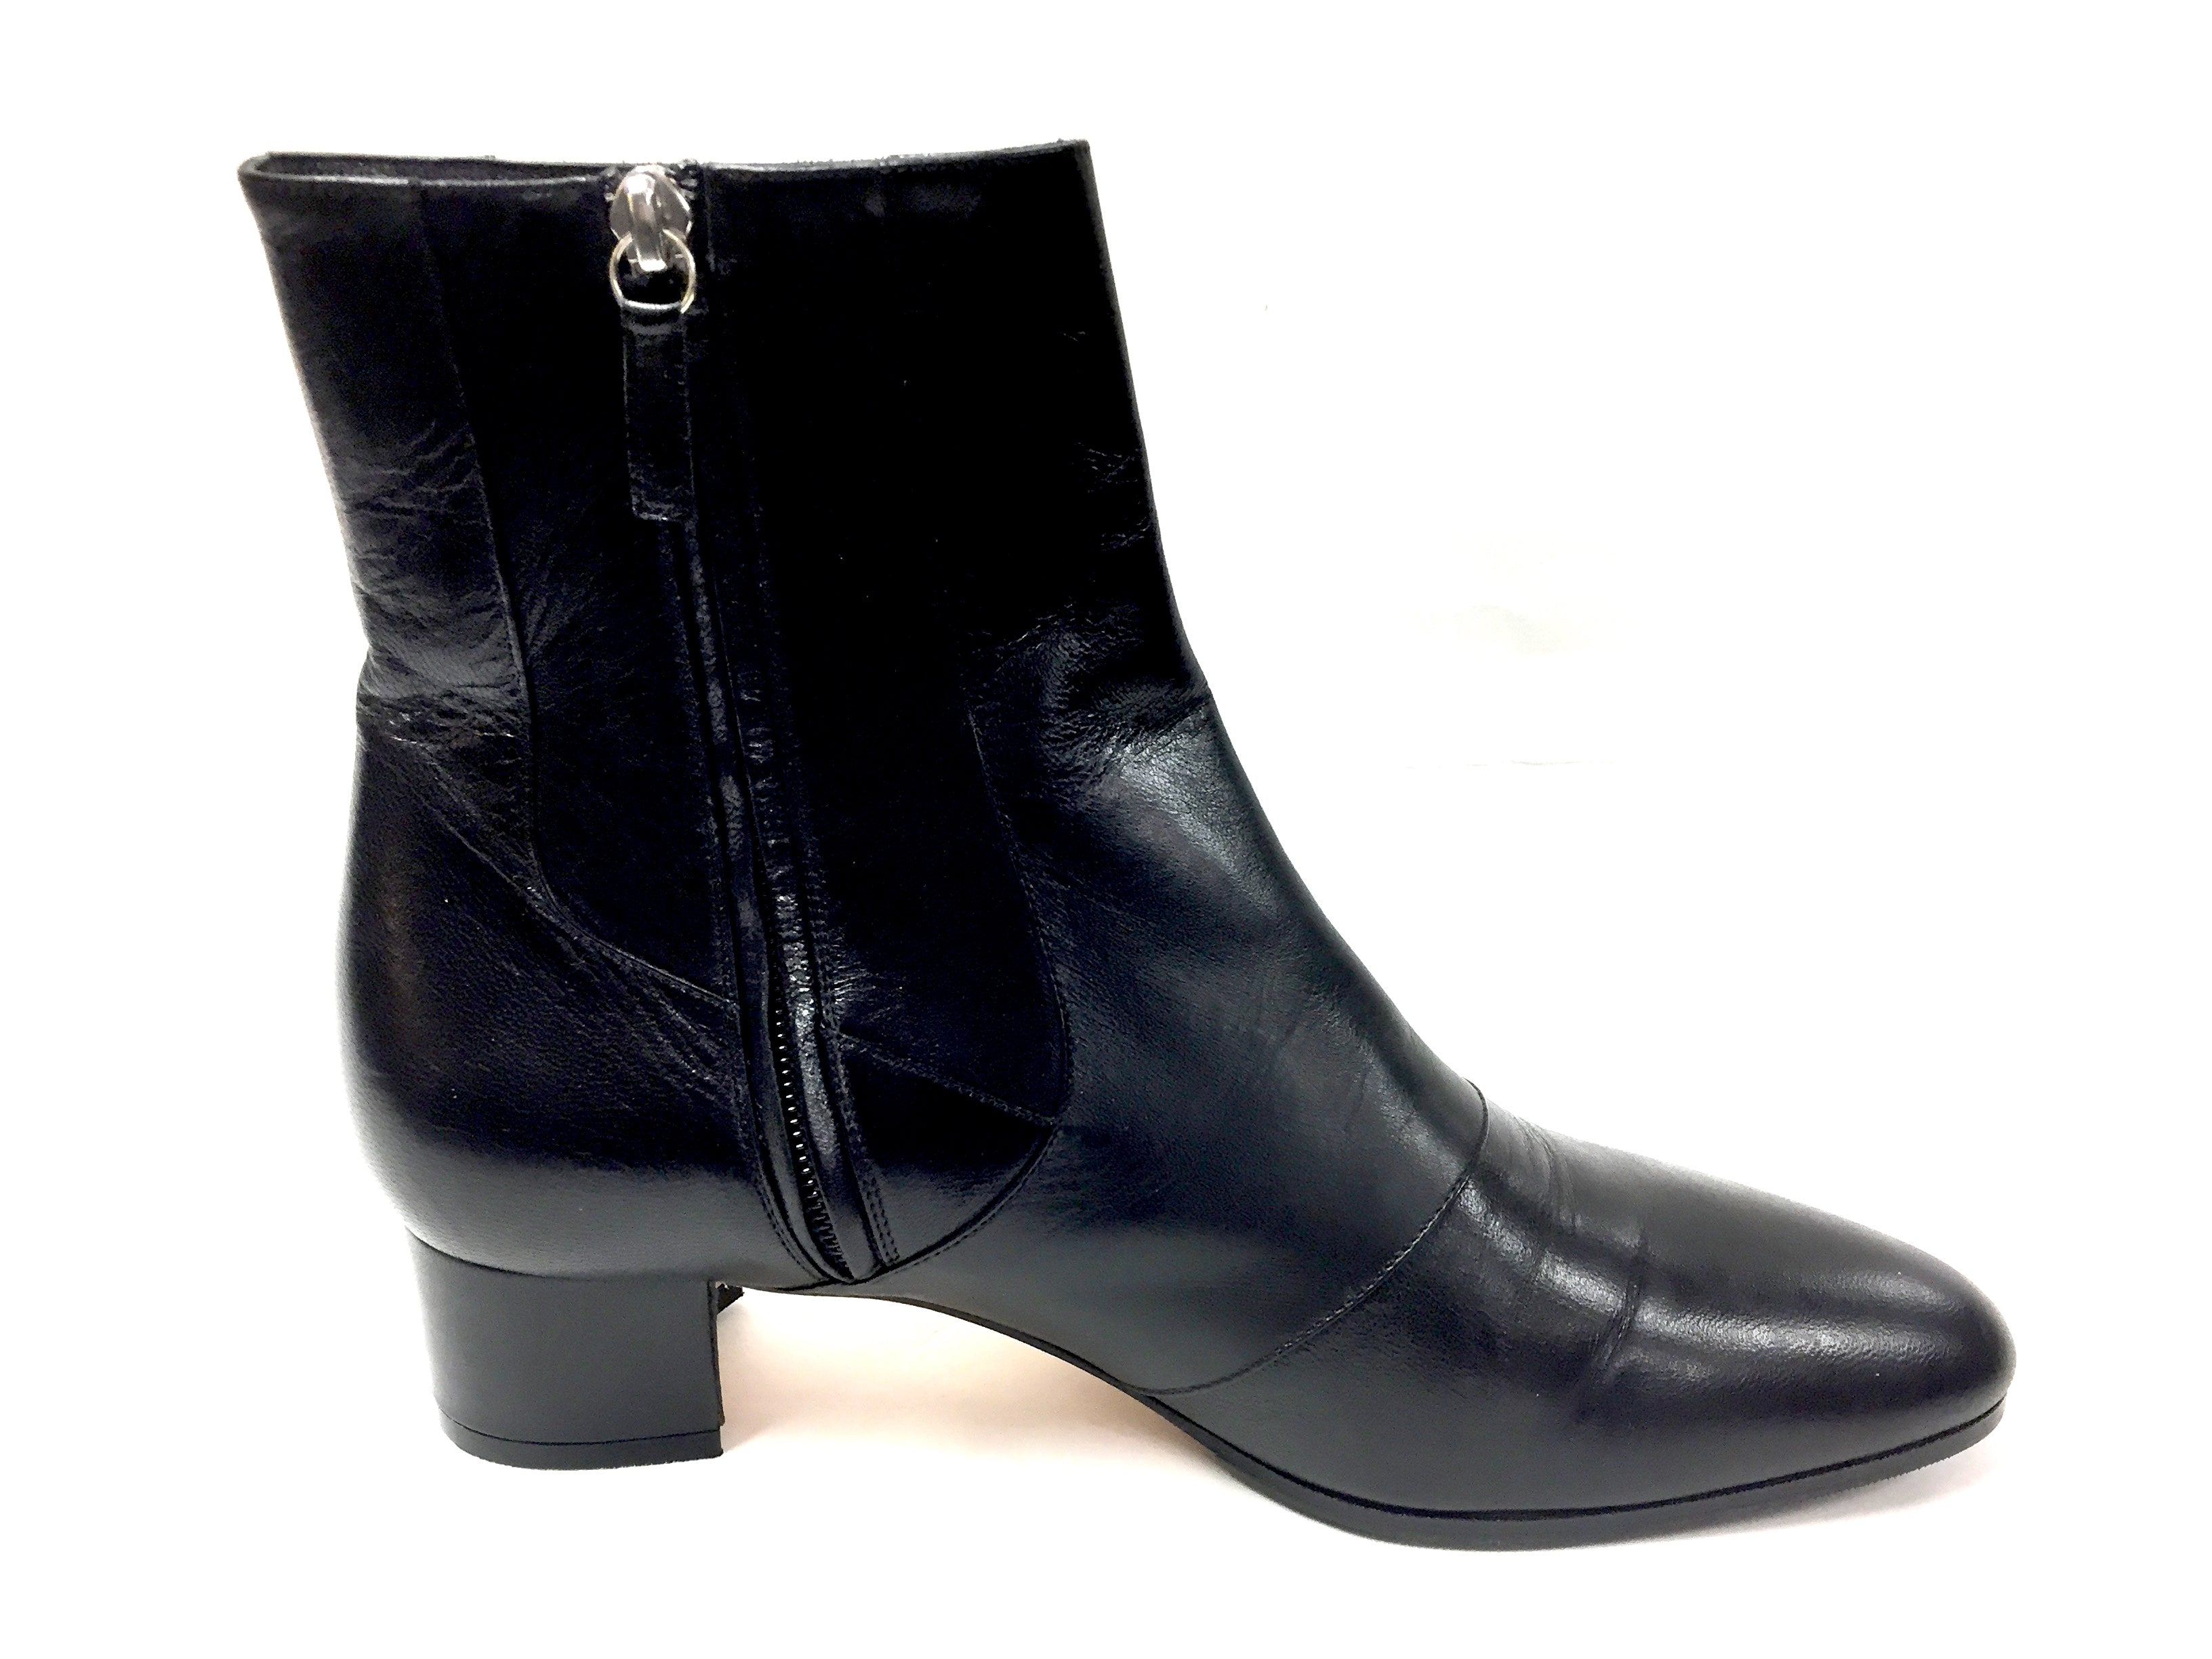 3280eceb74a MANOLO BLAHNIK Black Leather Low Heel Ankle Boots Booties Size  9.5M